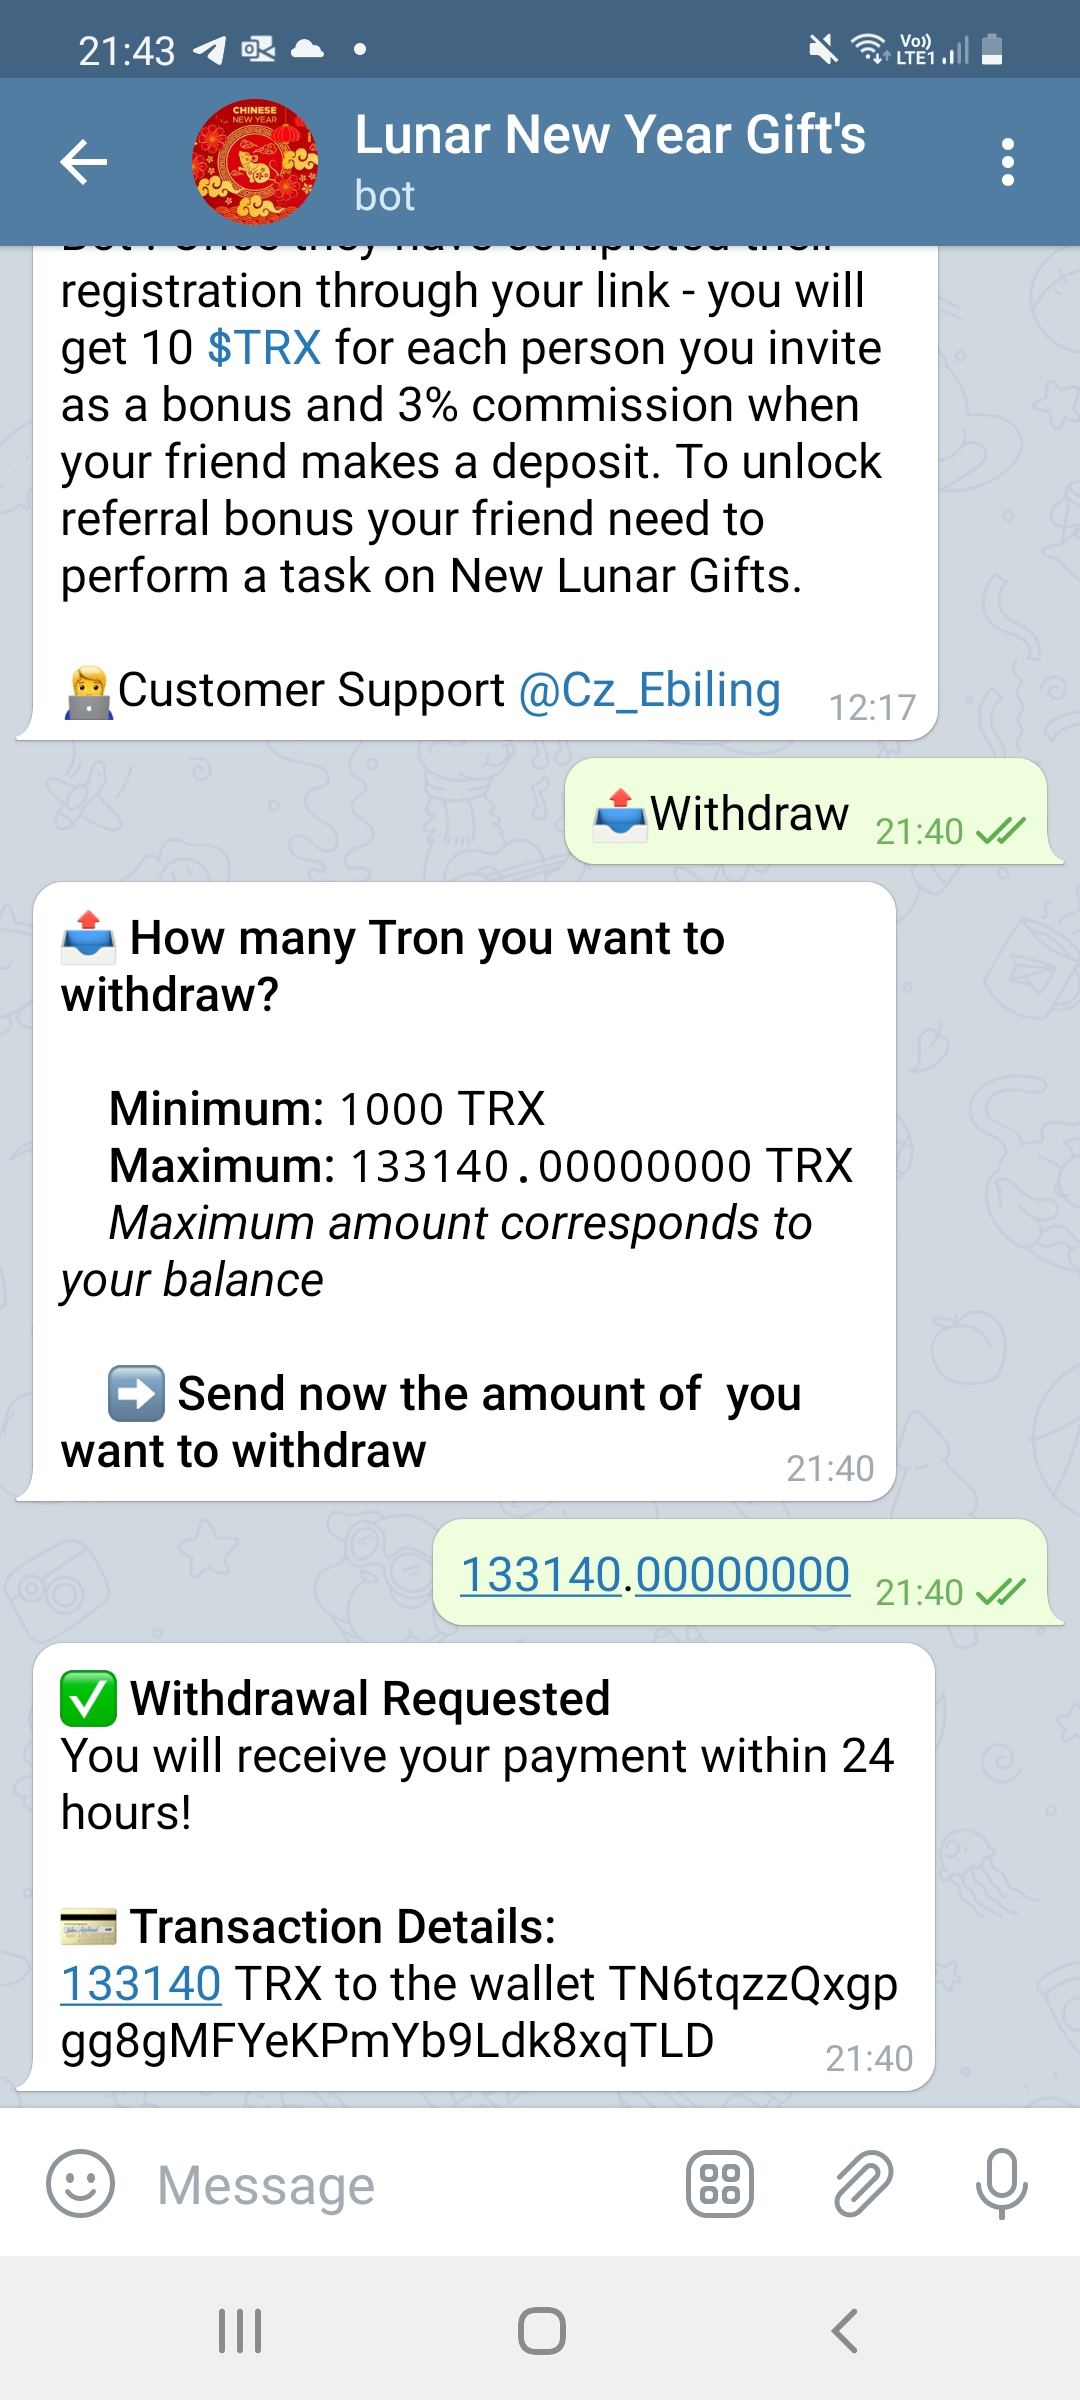 Bot taking money for withdrawal and not paying